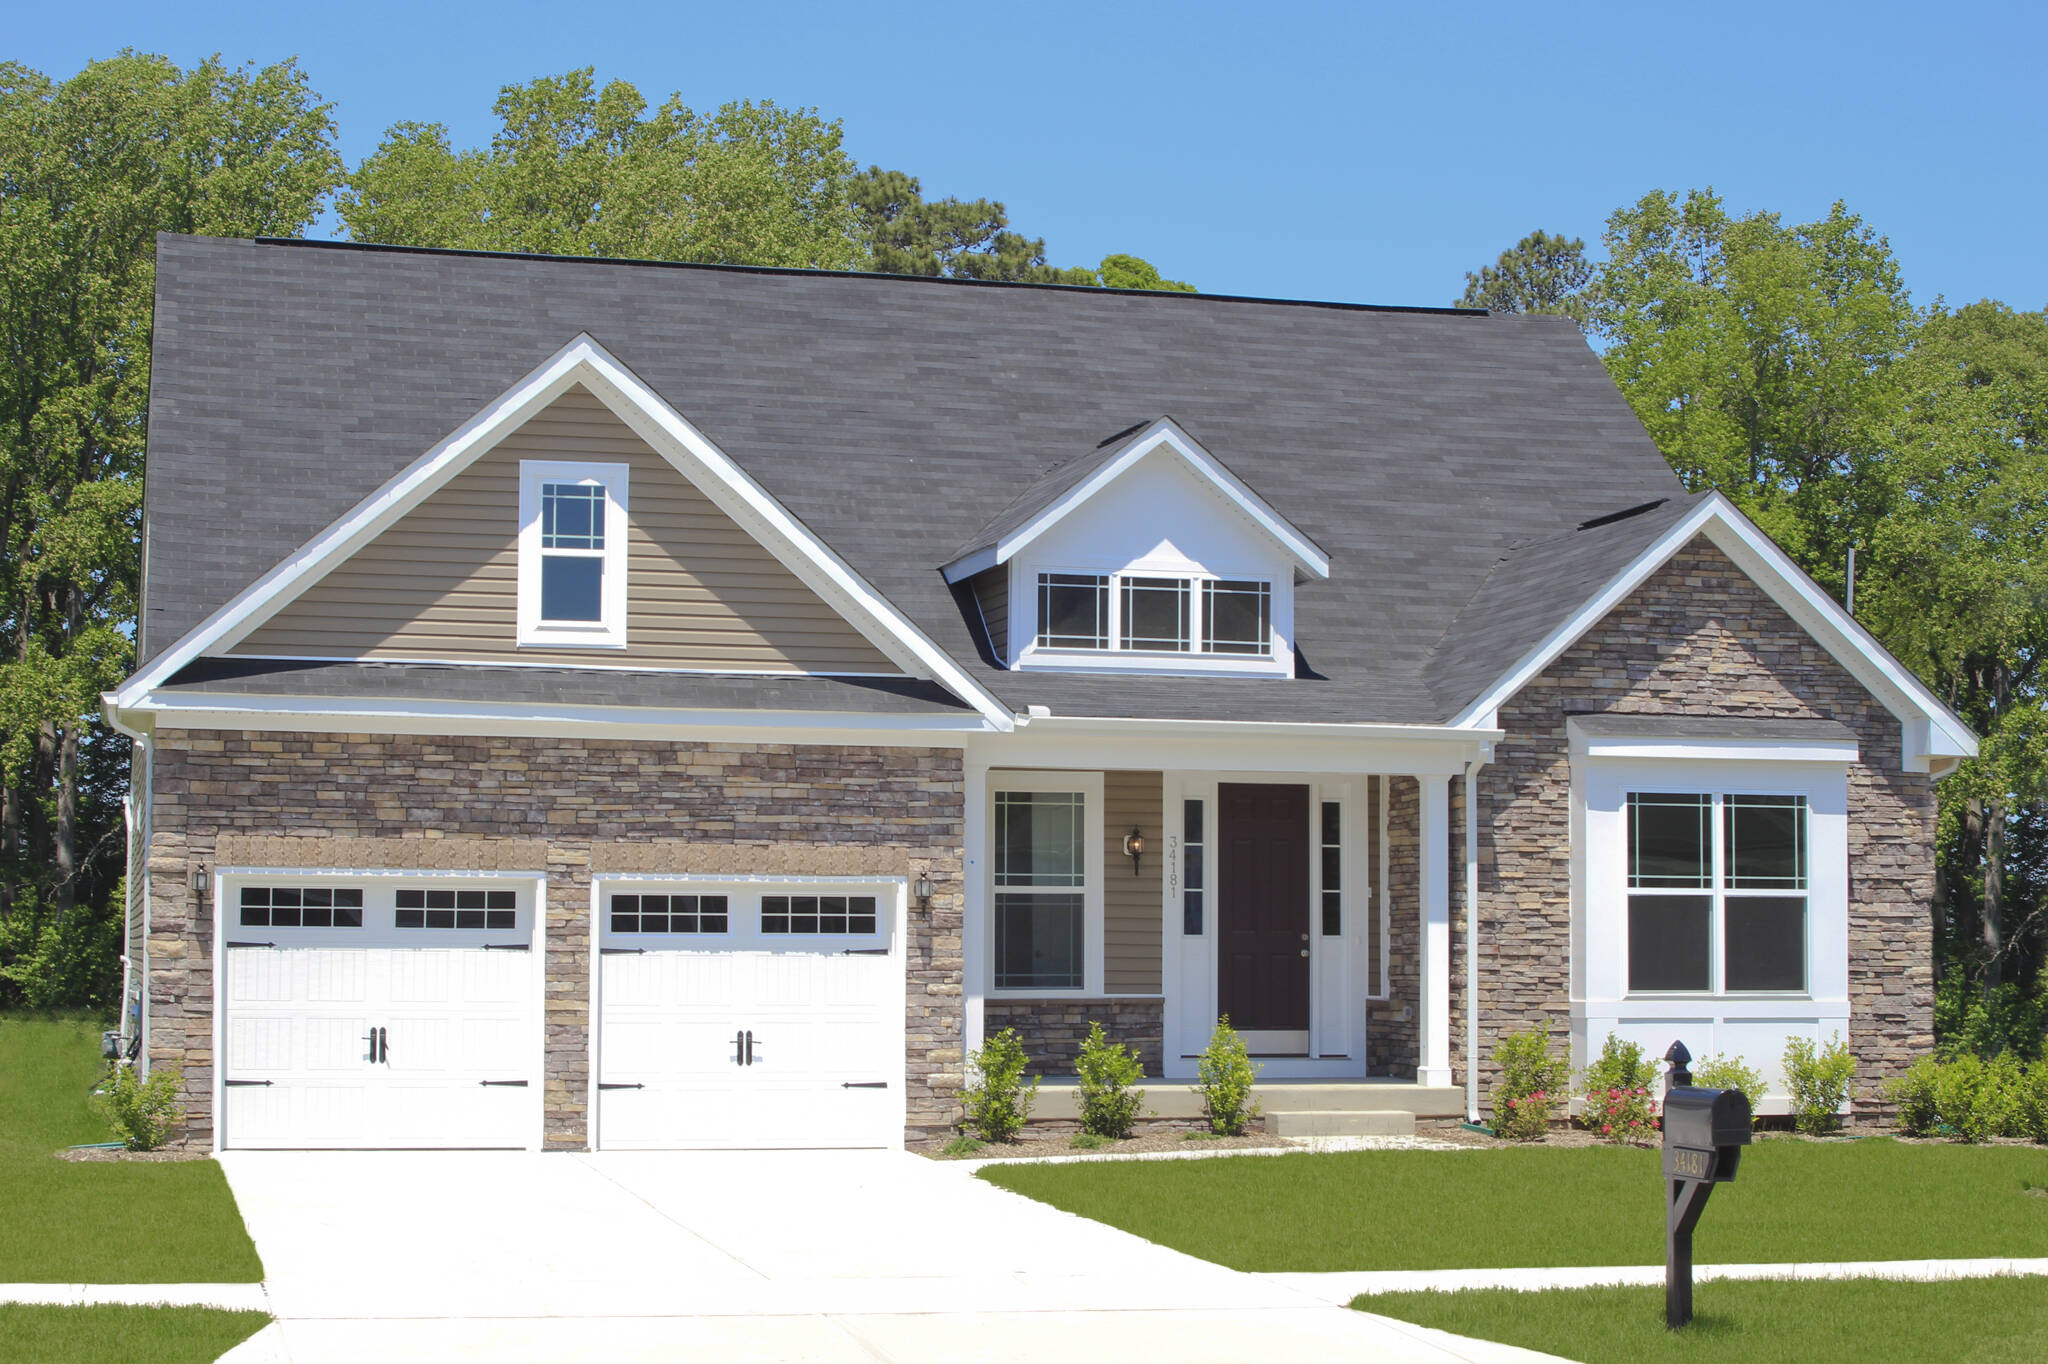 st michael fc new homes at red mill pond in delaware